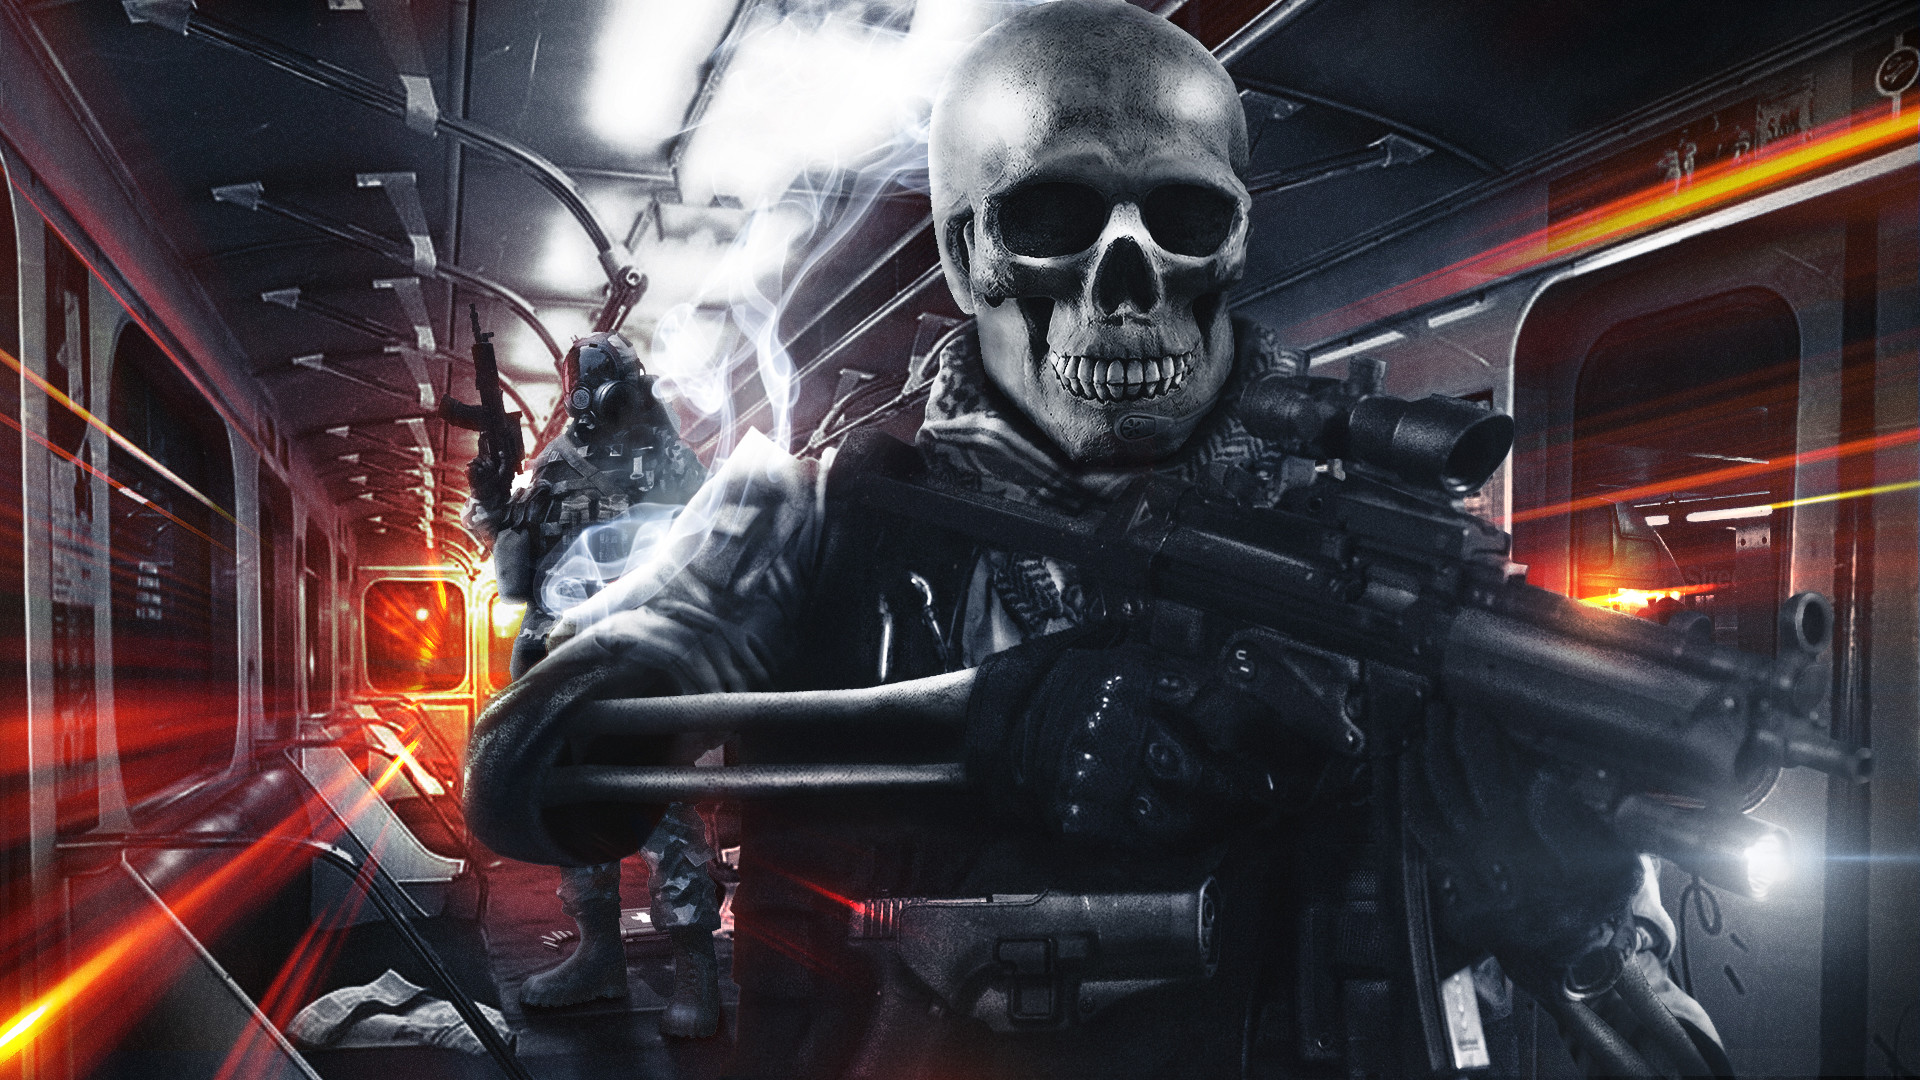 Skull Wallpaper, Hd Wallpaper, Wallpapers, Drawings And Illustrations, Army  Soldier, Ghost Rider, Skeletons, Soldiers, Skulls